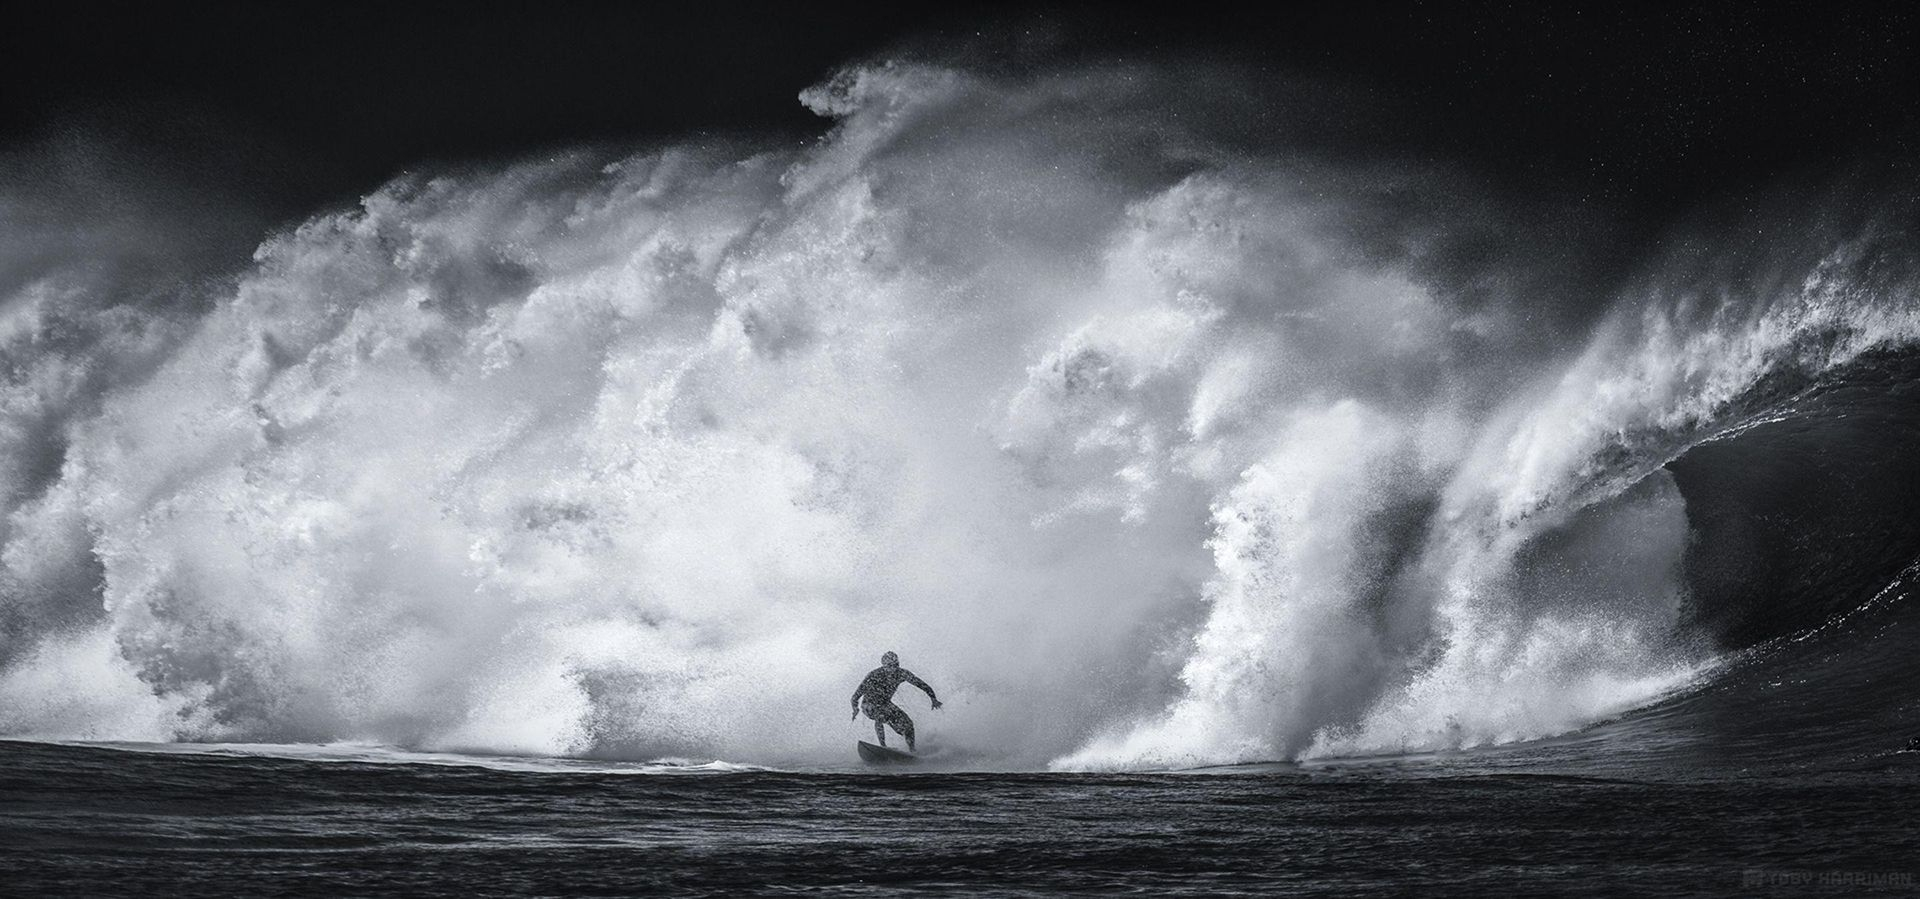 Photograph by Toby Harriman, National Geographic